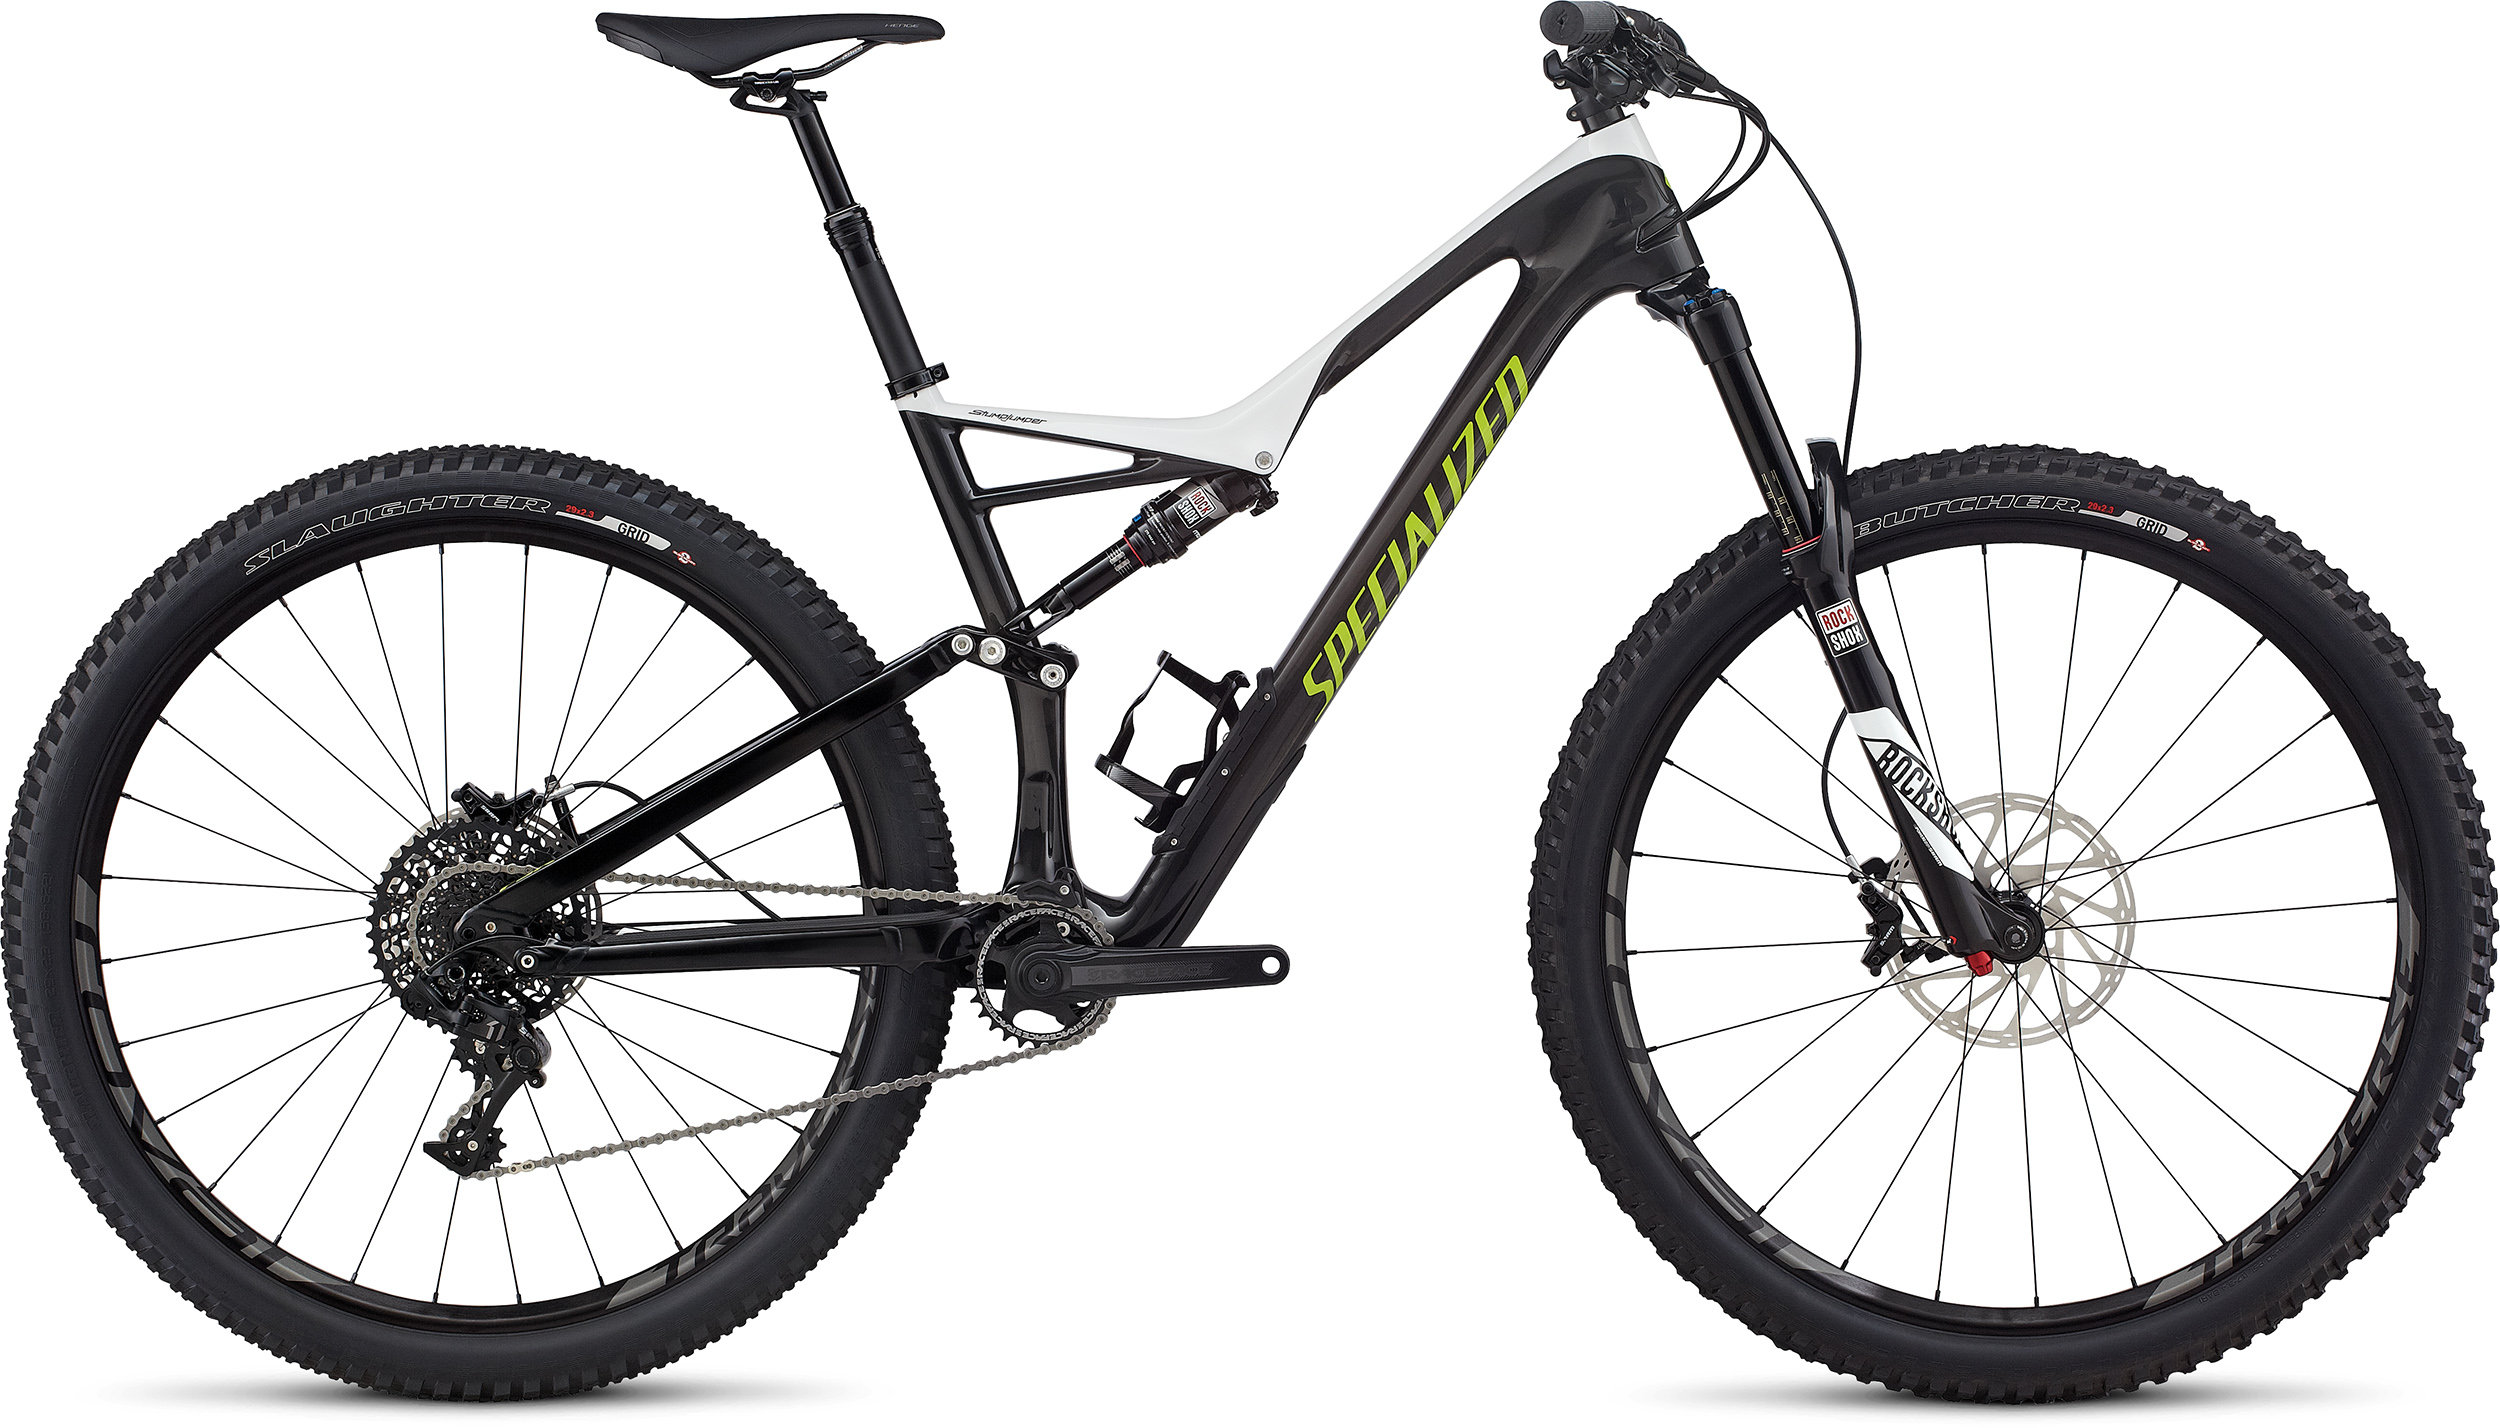 SPECIALIZED SJ FSR EXPERT CARBON 29 WHT/CARB/HYP L - Bike Zone